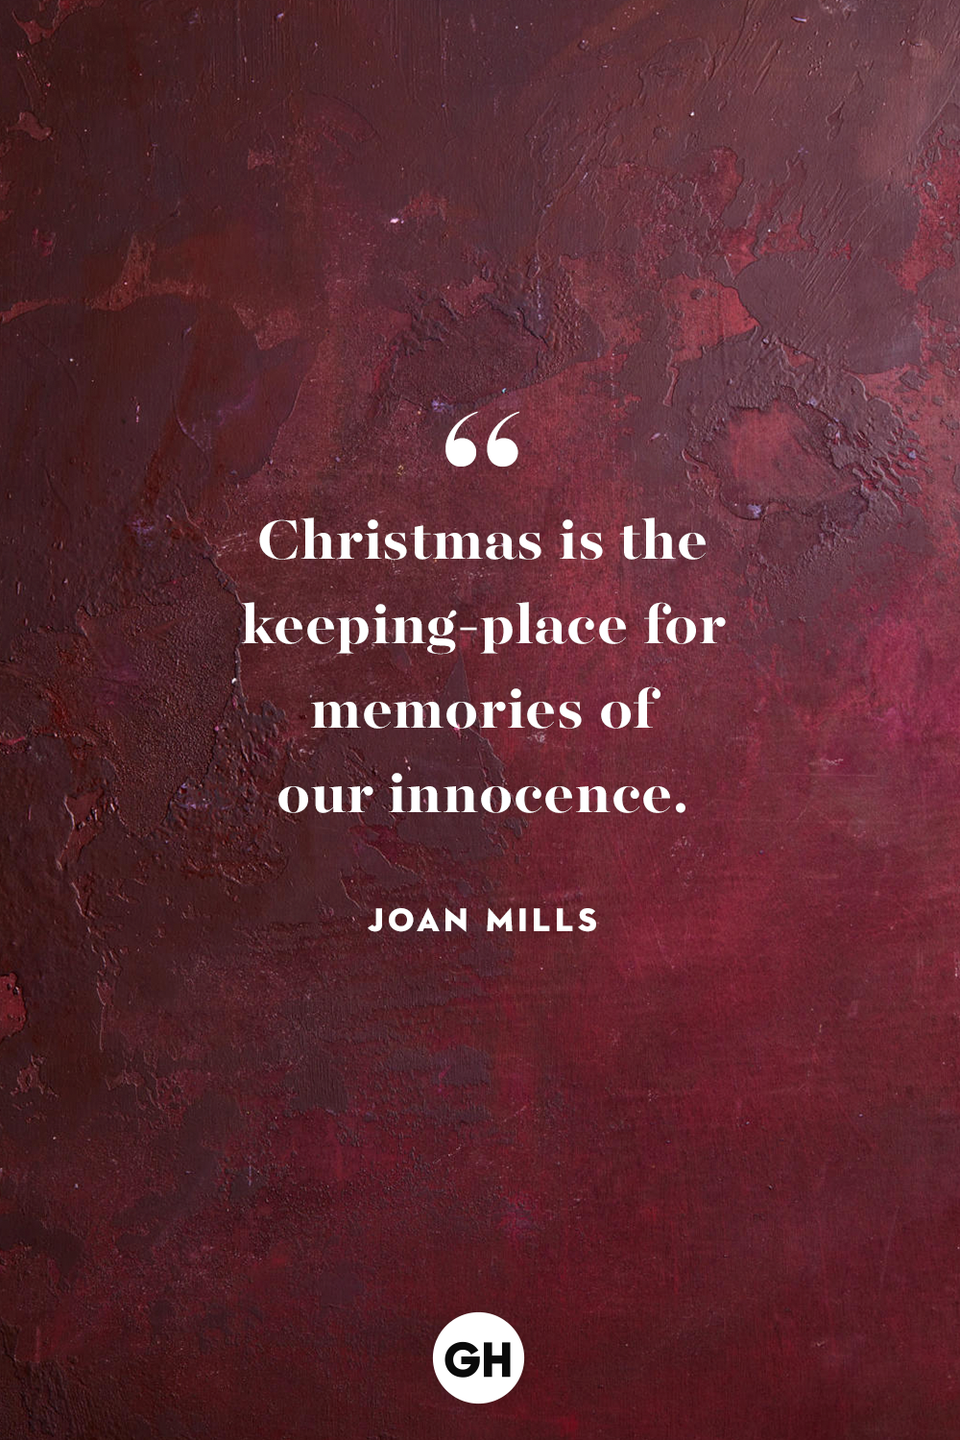 <p>Christmas is the keeping-place for memories of our innocence.</p>